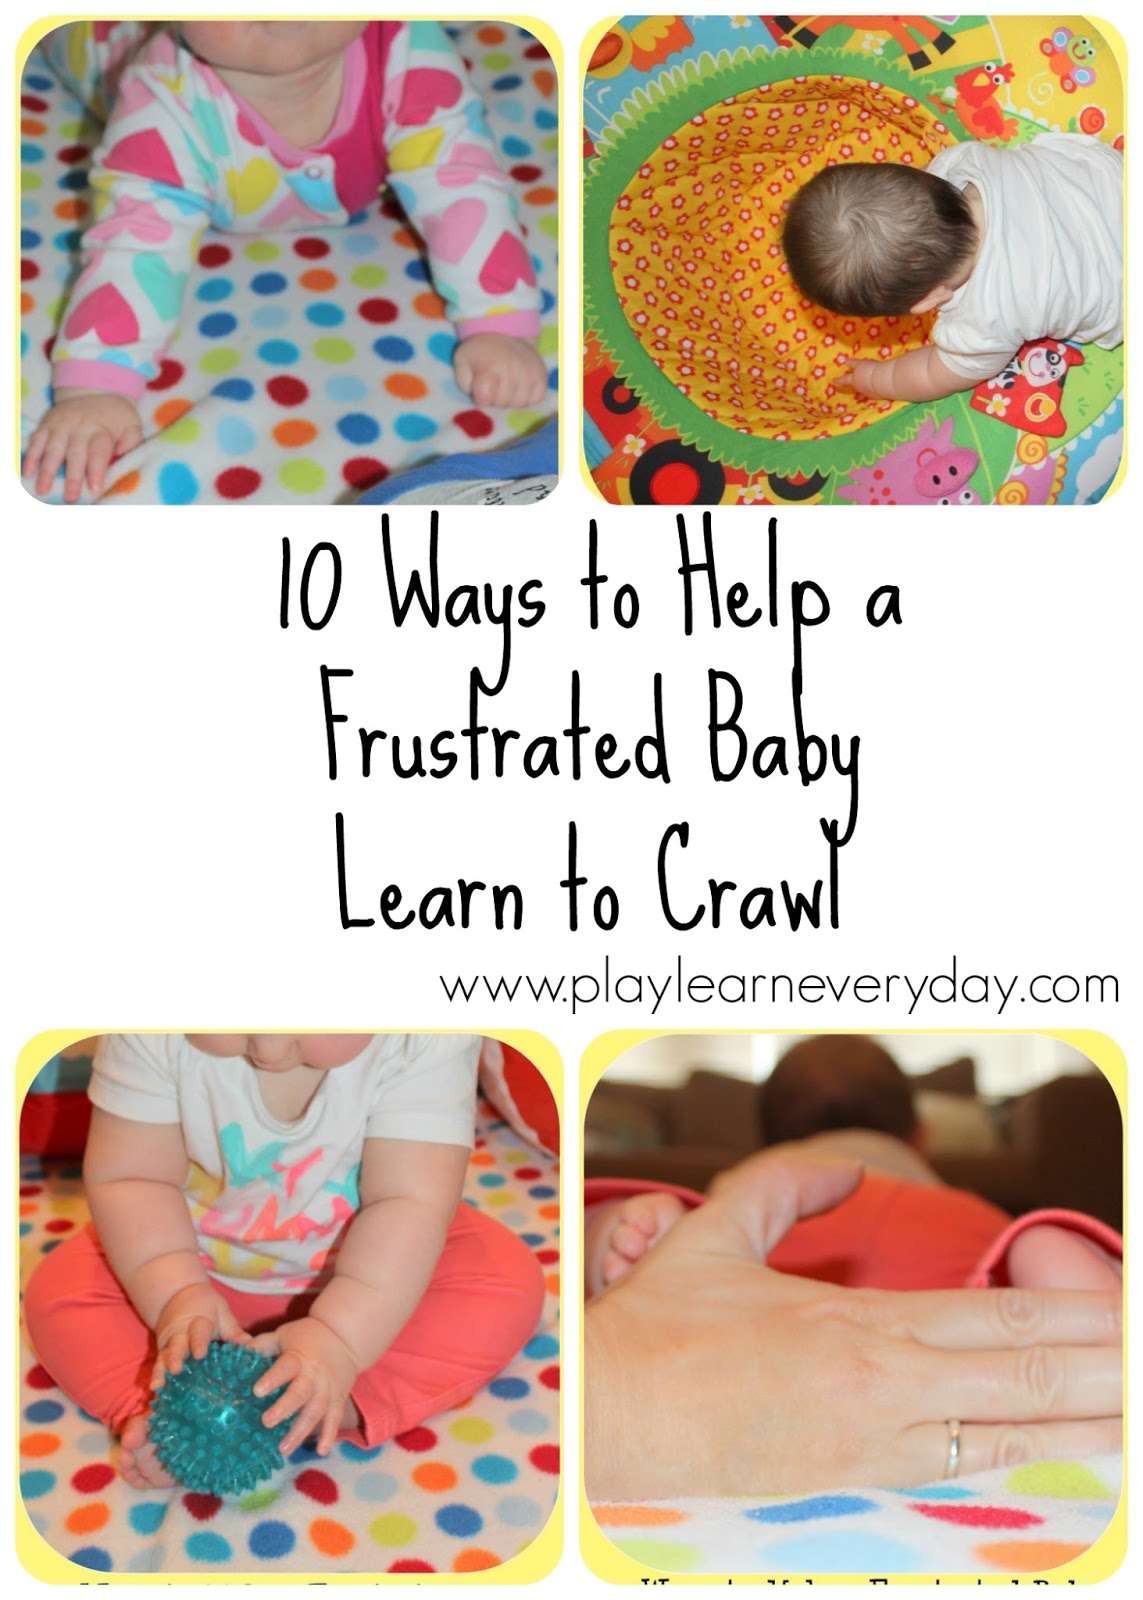 10 ways to help a frustrated baby learn to crawl - play and learn